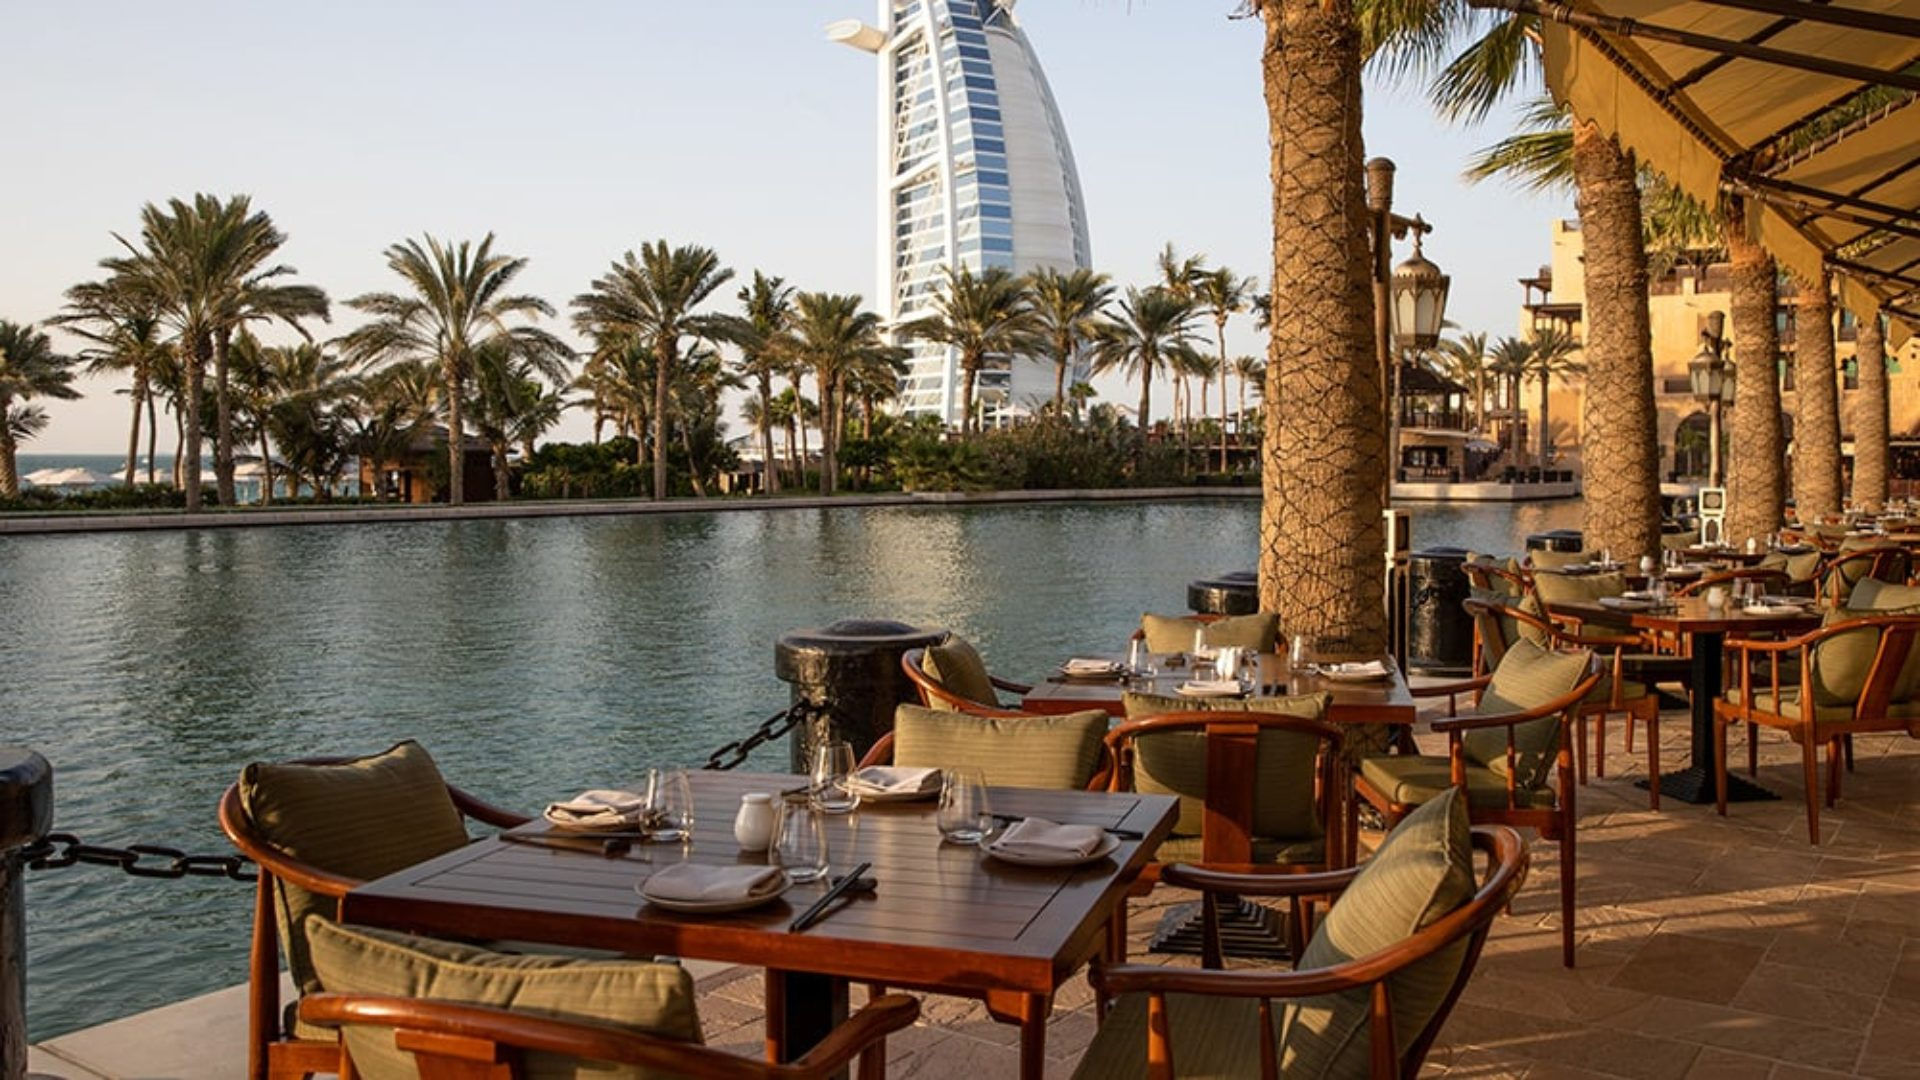 Outdoor terrace dining at sunset at Jumeirah Dar Al Masyaf